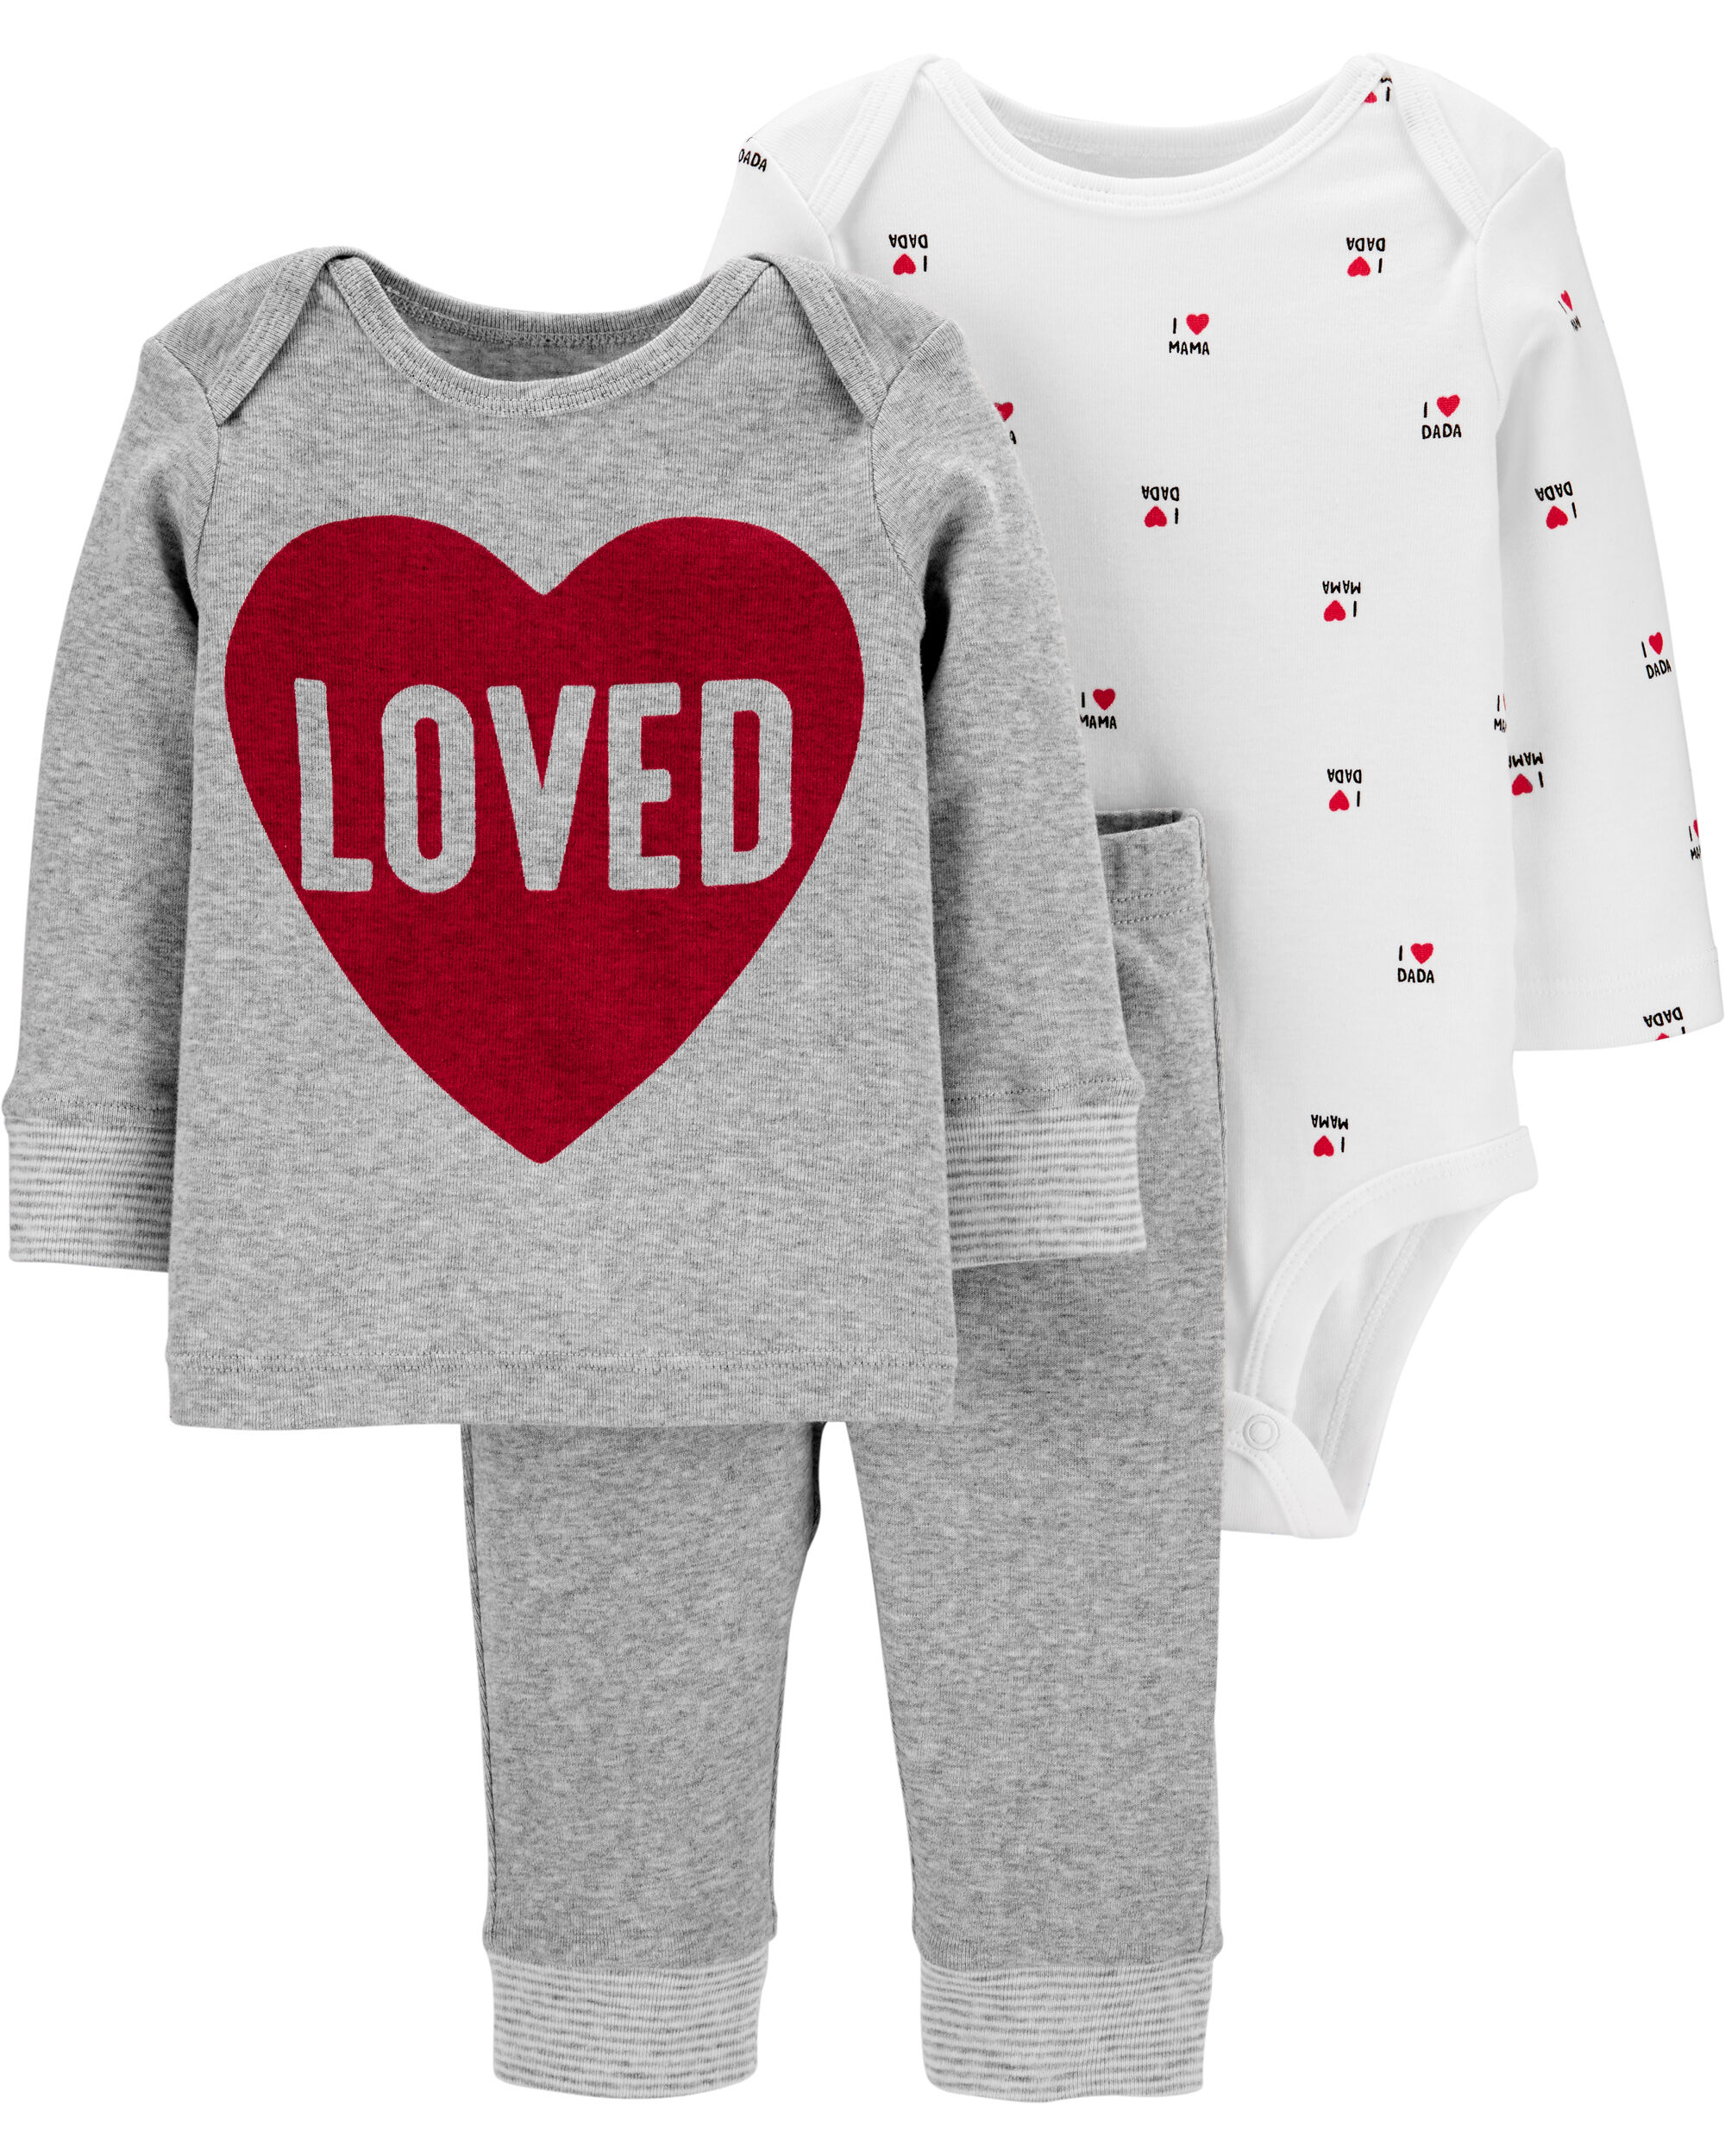 Toddler Kids Baby Girls Valentine/'s Day Clothes Top T-shirt Pants Legging Outfit